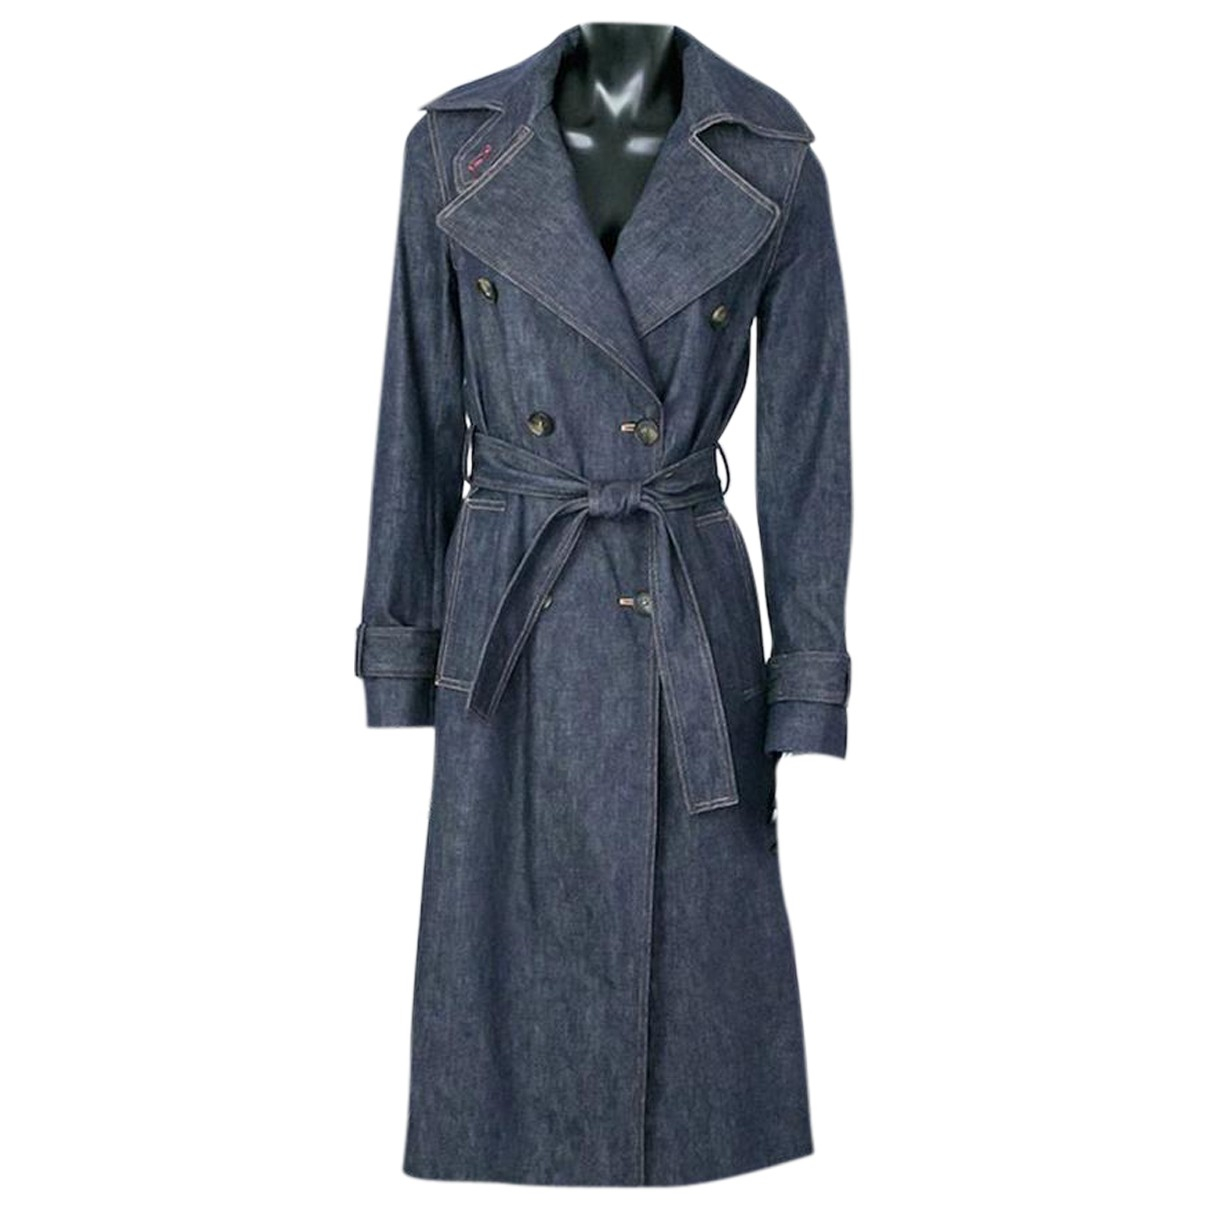 Victoria Beckham N Navy Denim - Jeans Trench coat for Women 8 US